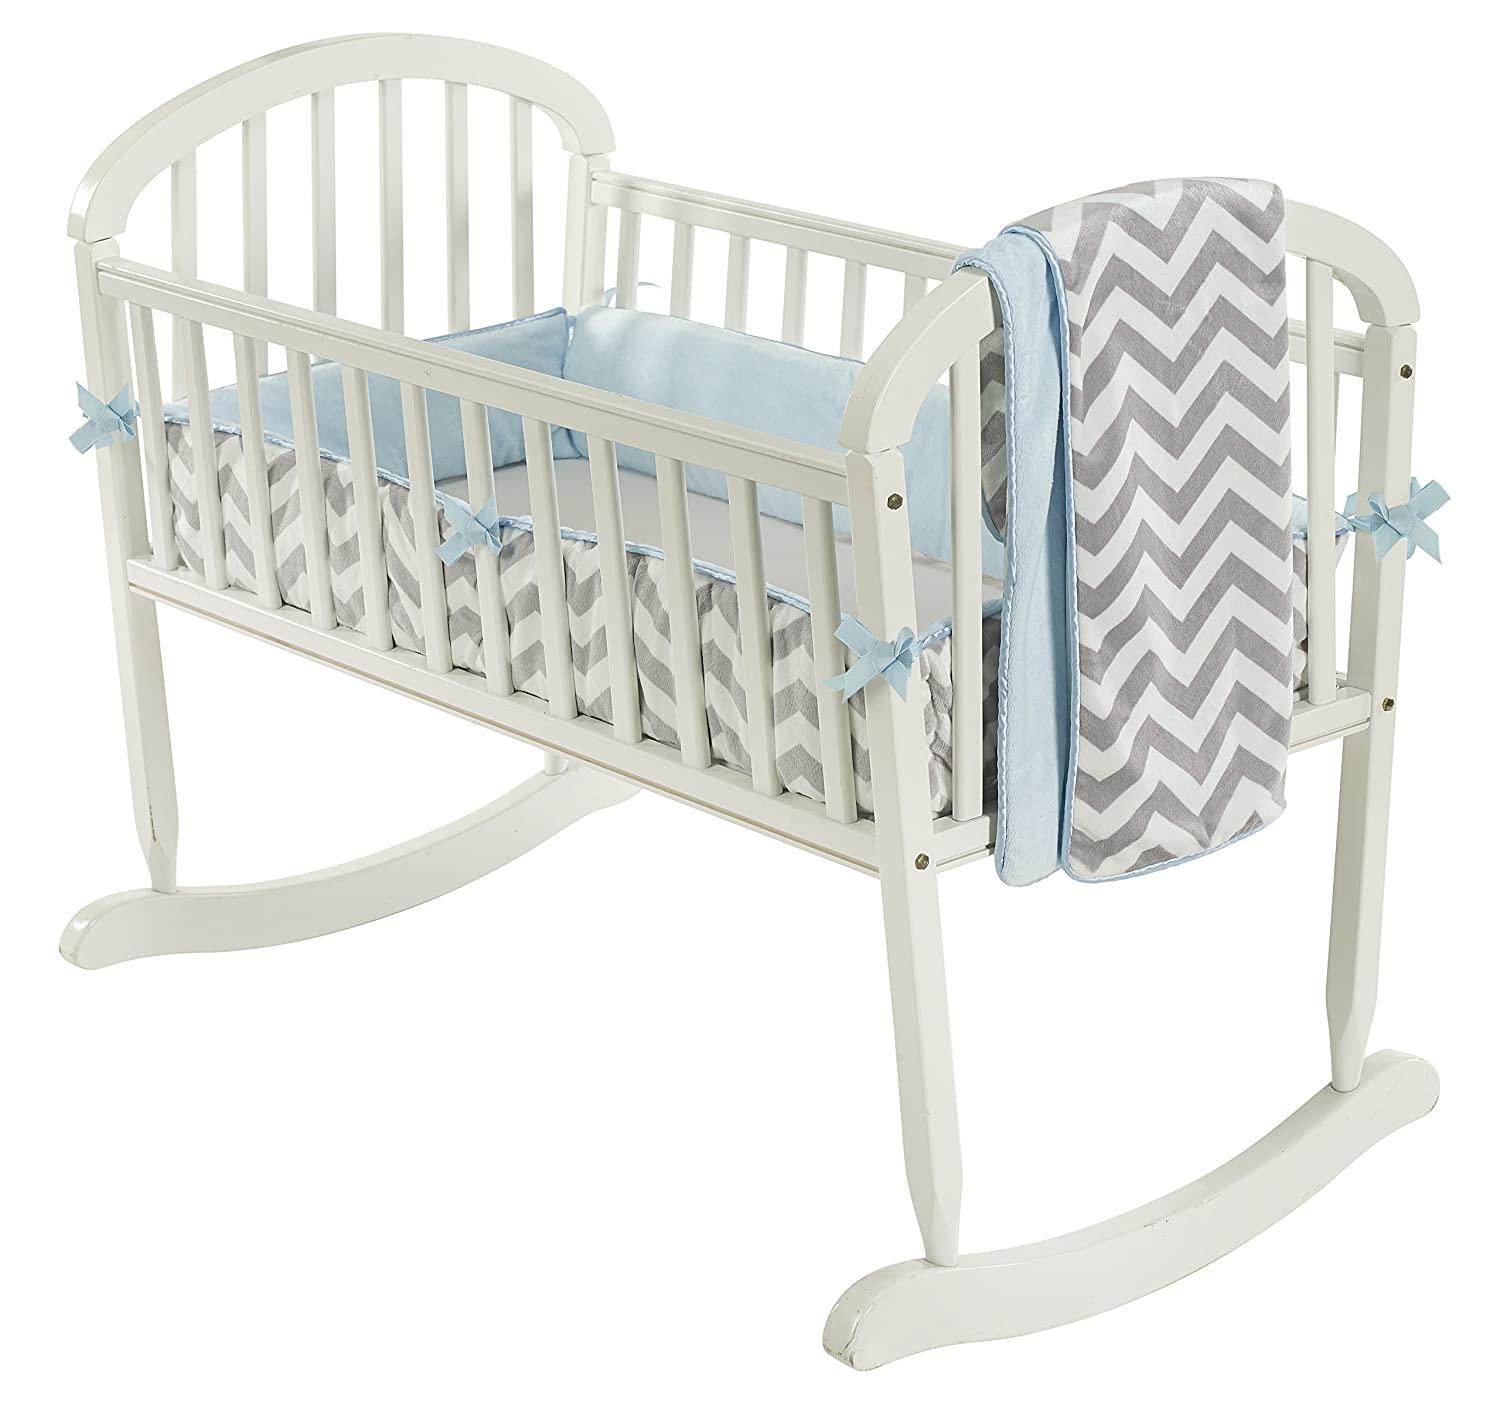 Baby Doll Bedding Minky Chevron Cradle Bedding Set, Blue 8700cr36